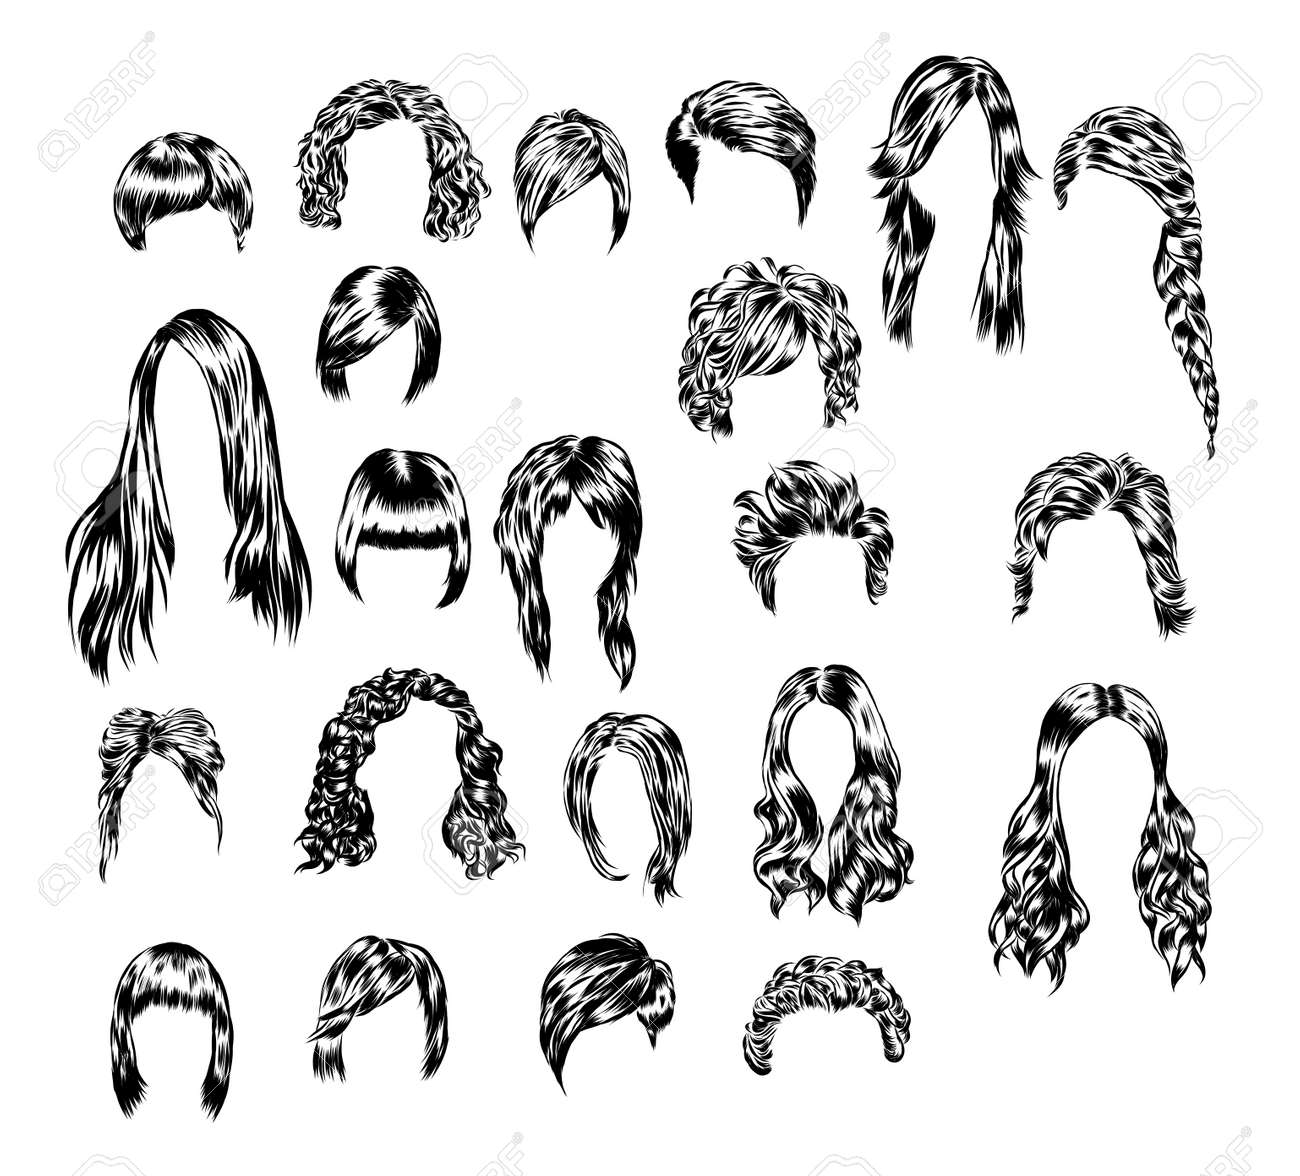 Hand drawn set of different women s hair styles. - 64686813